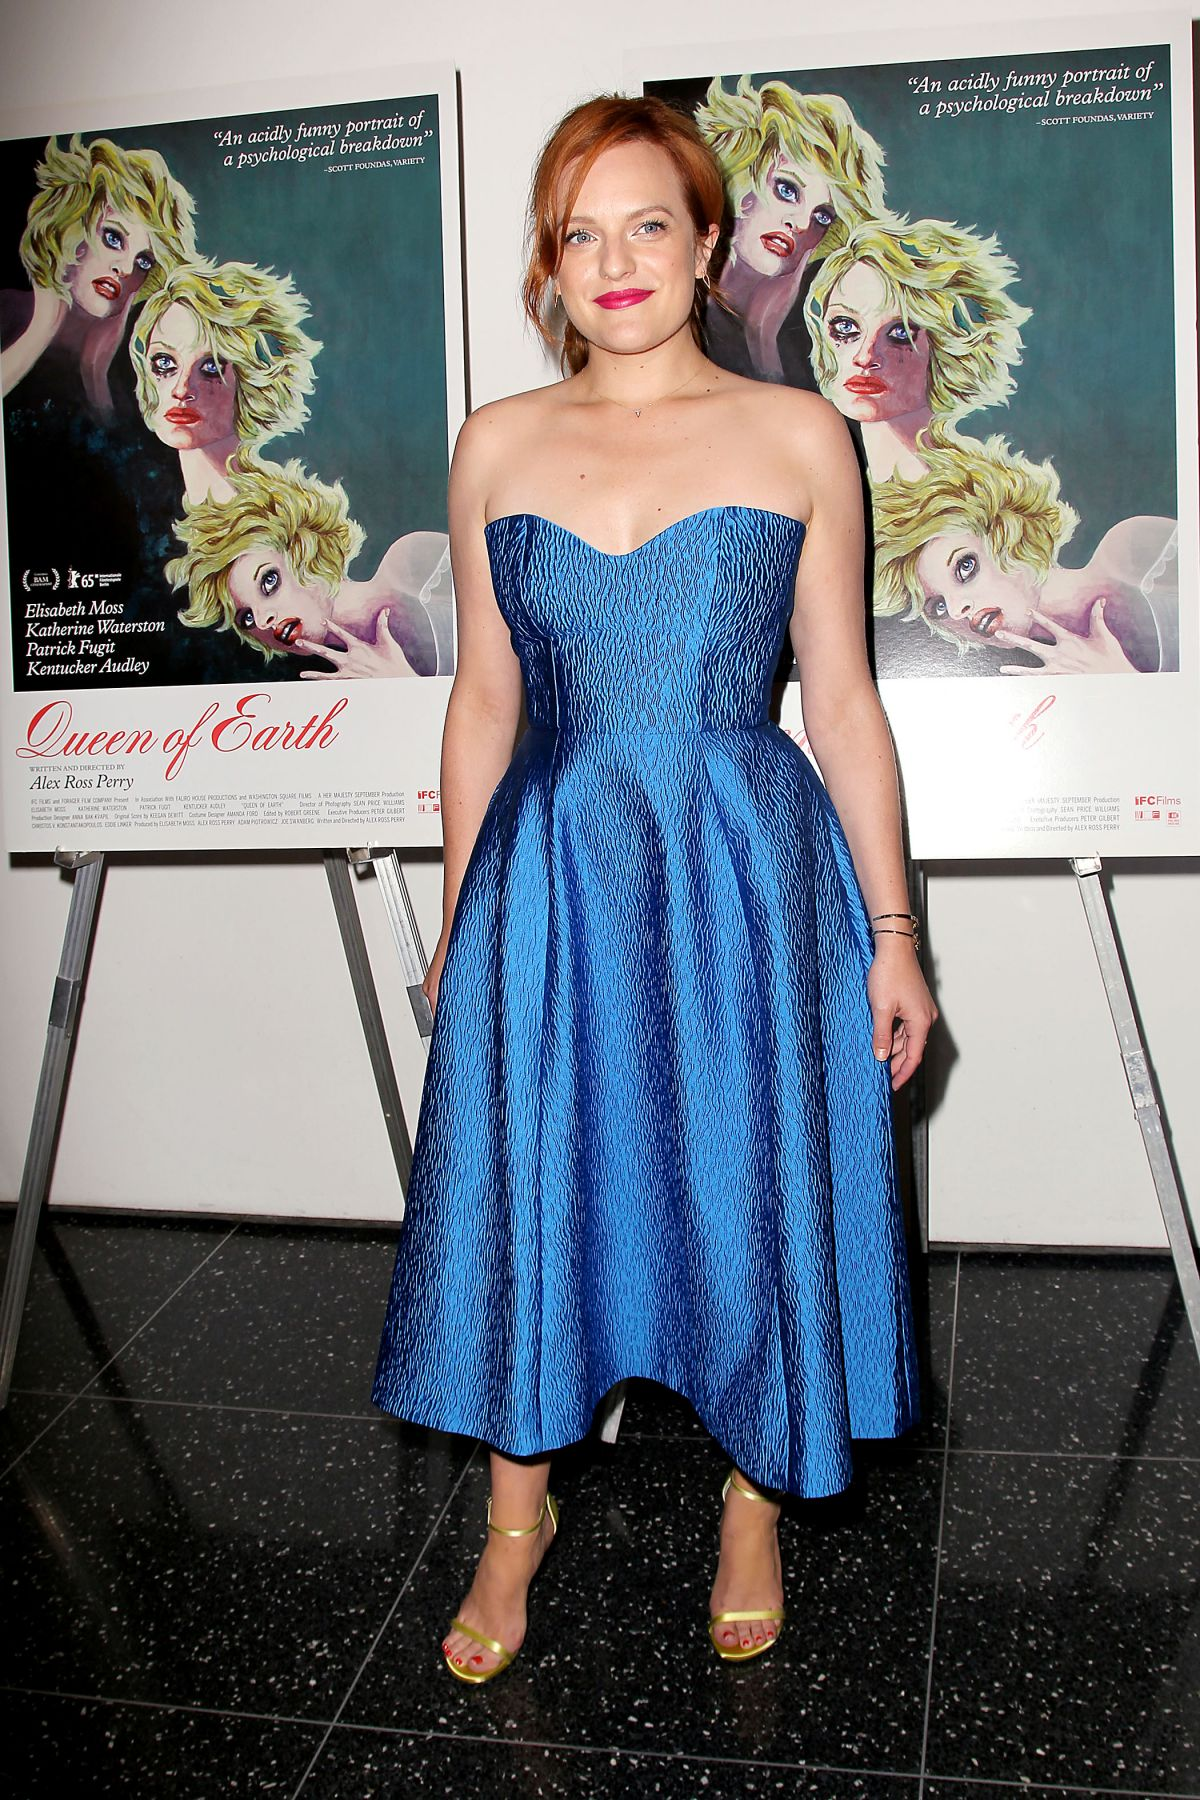 elisabeth-moss-in-monique-lhuillier-queen-of-earth-new-york-premiere